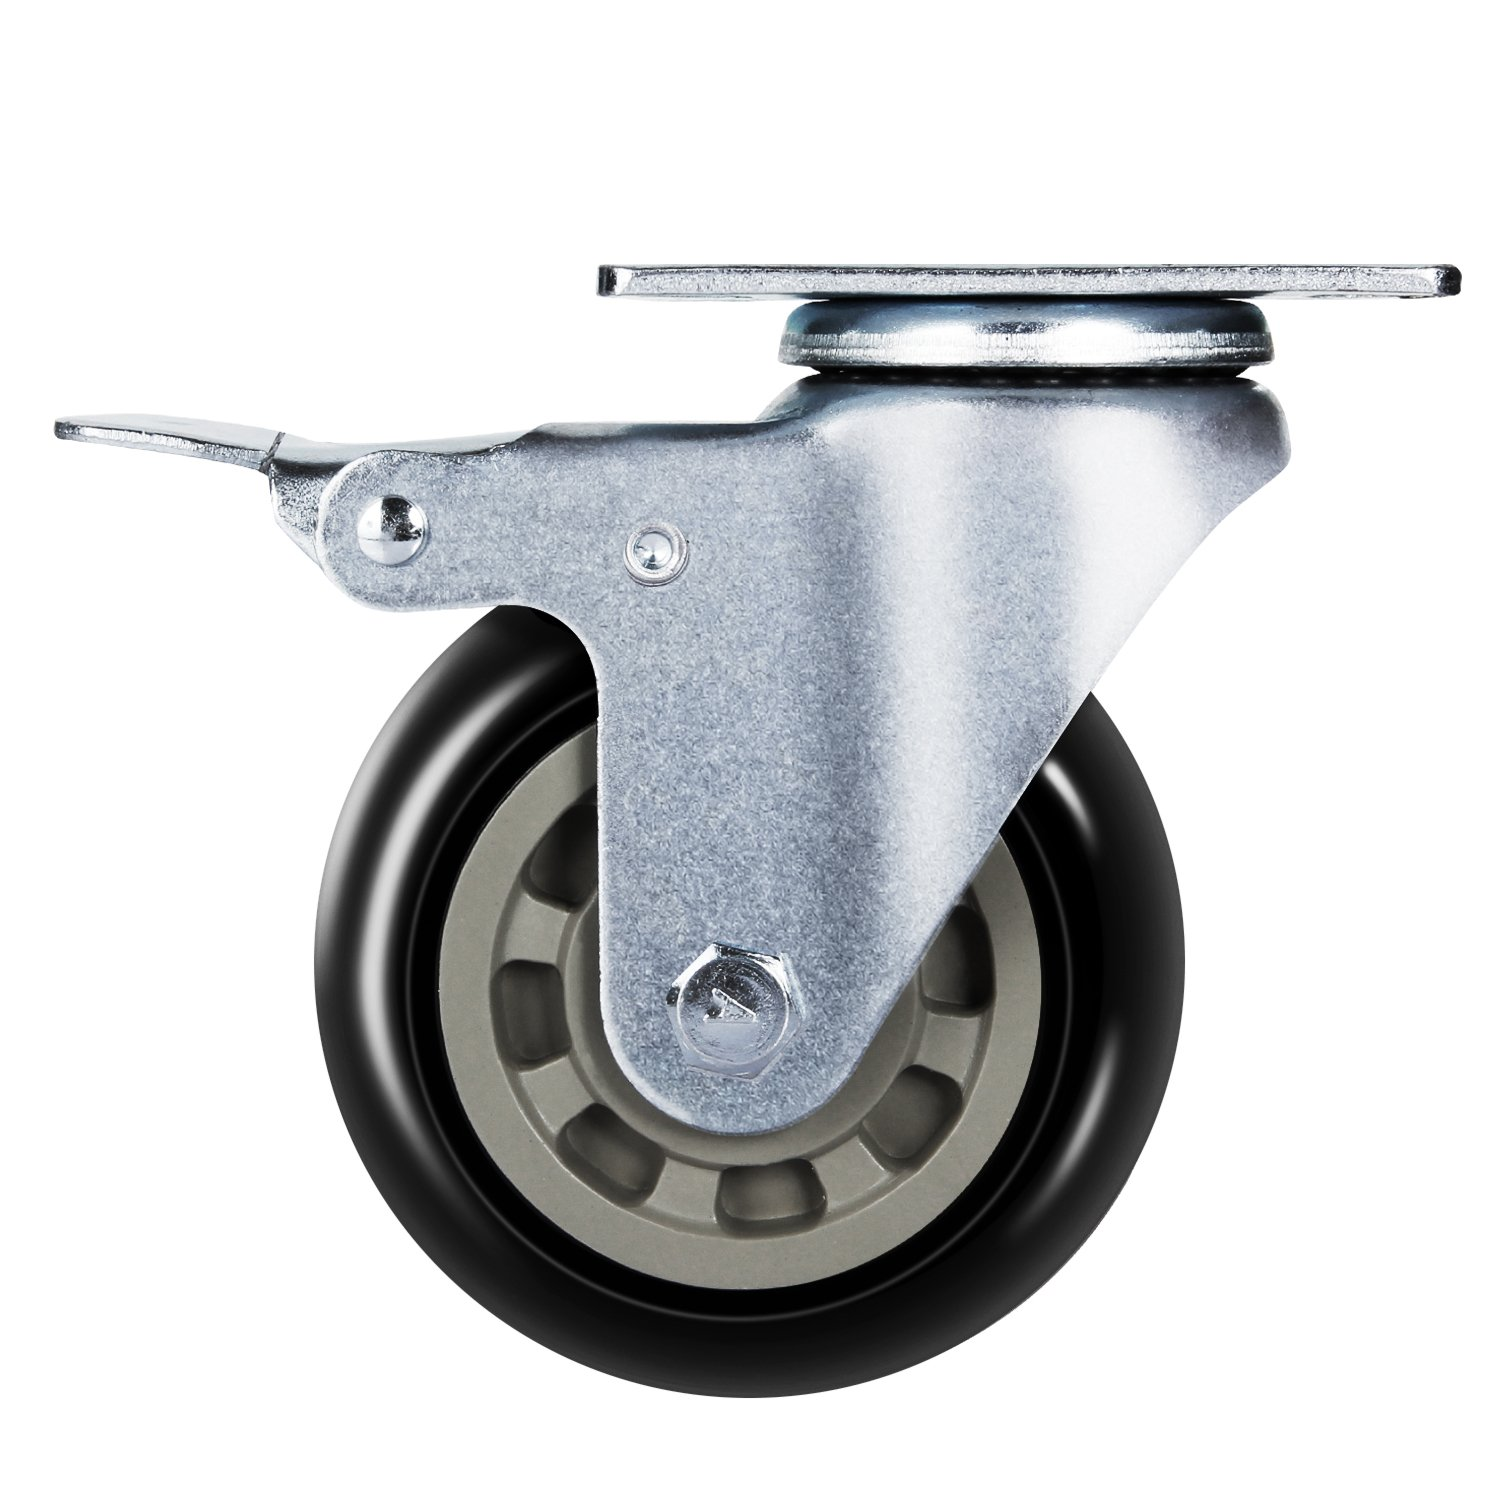 Antaprcis Caster Wheel Heavy Duty Swivel Wheels 360 Degree with Plate and Brake 4 Inches Set of 4 by Antaprcis (Image #3)